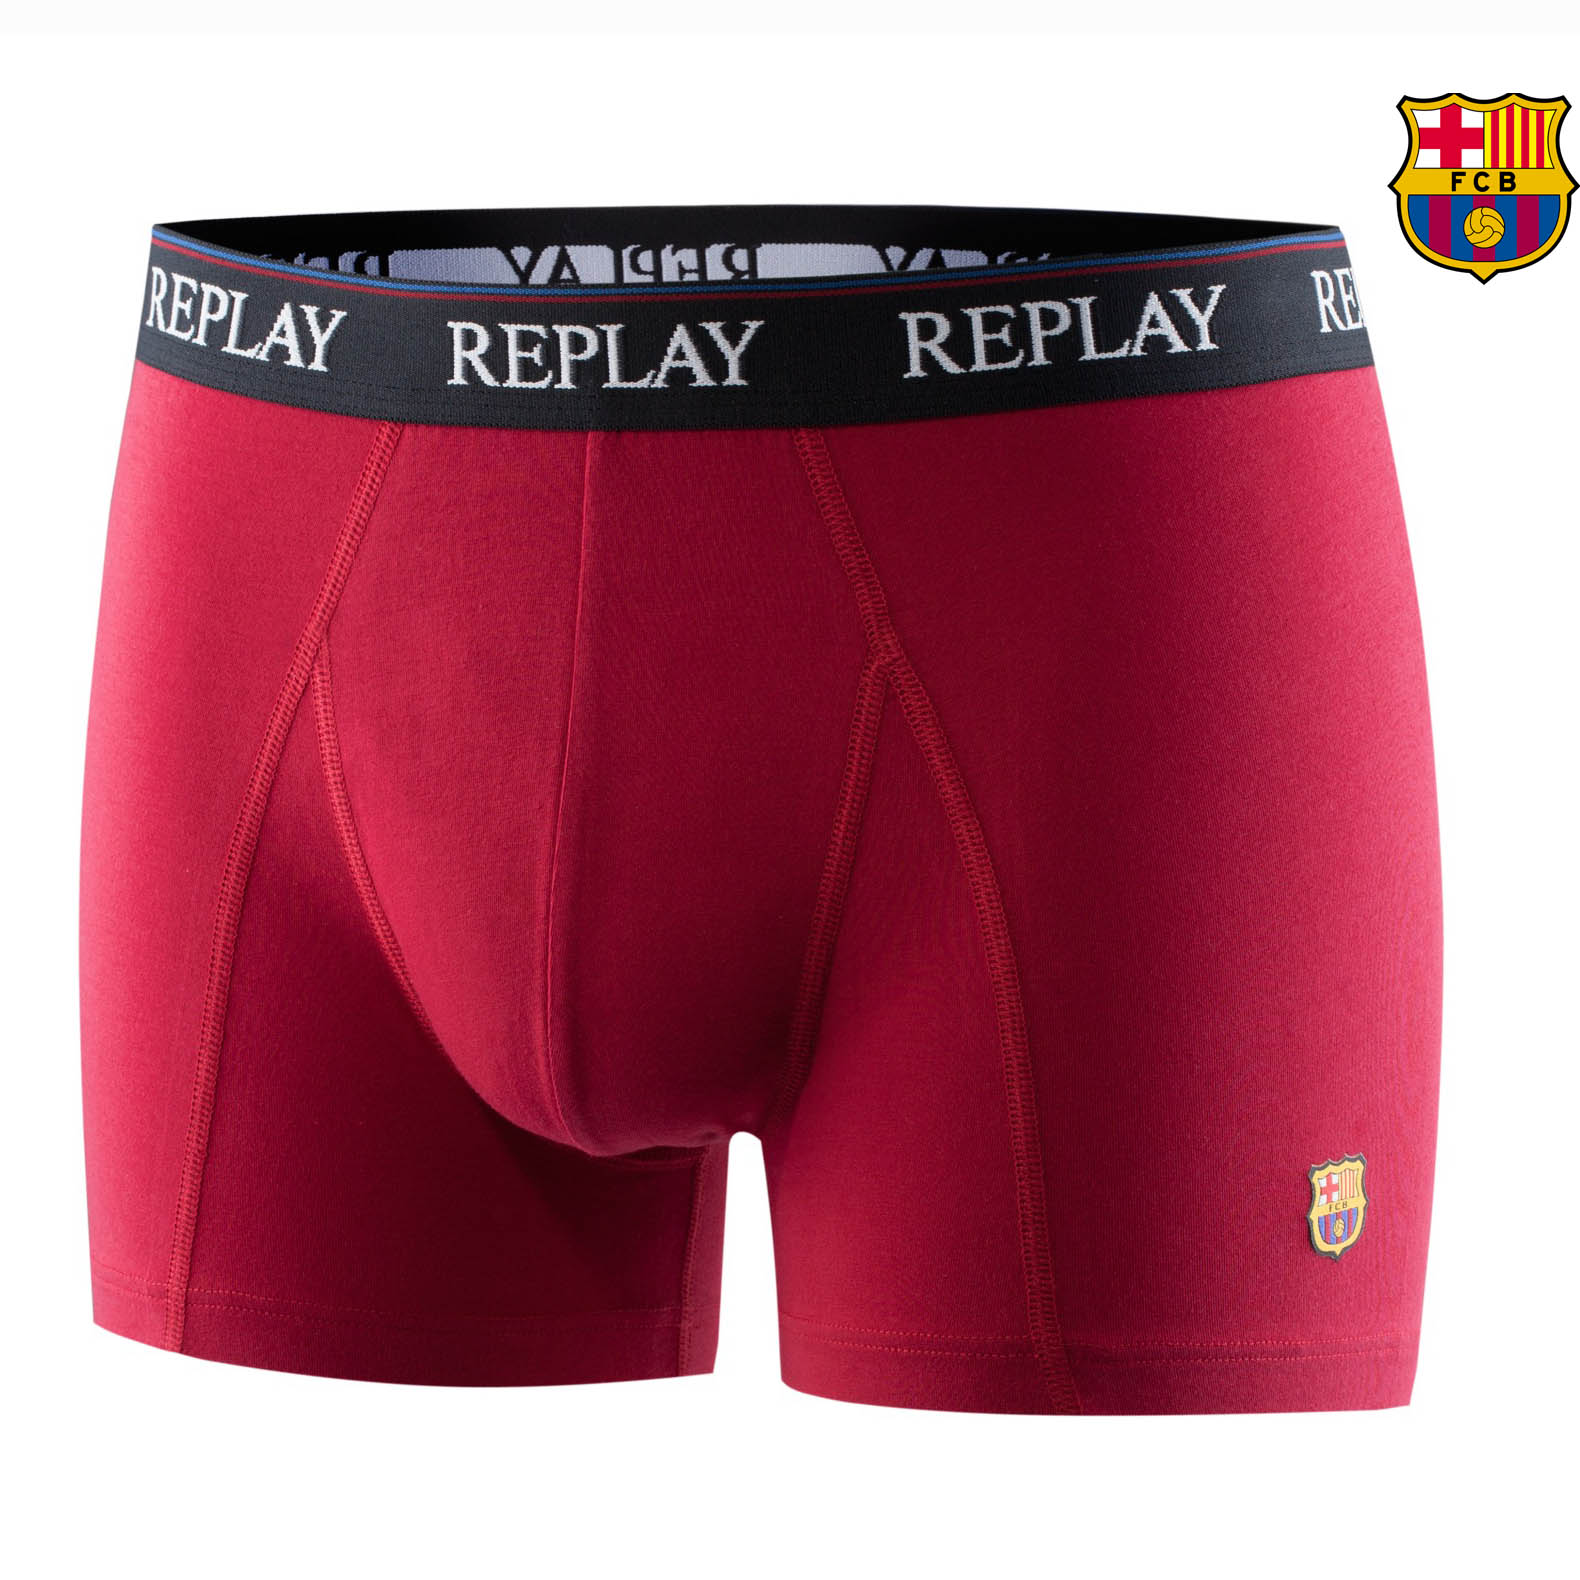 Boxer Brief Replay M251143